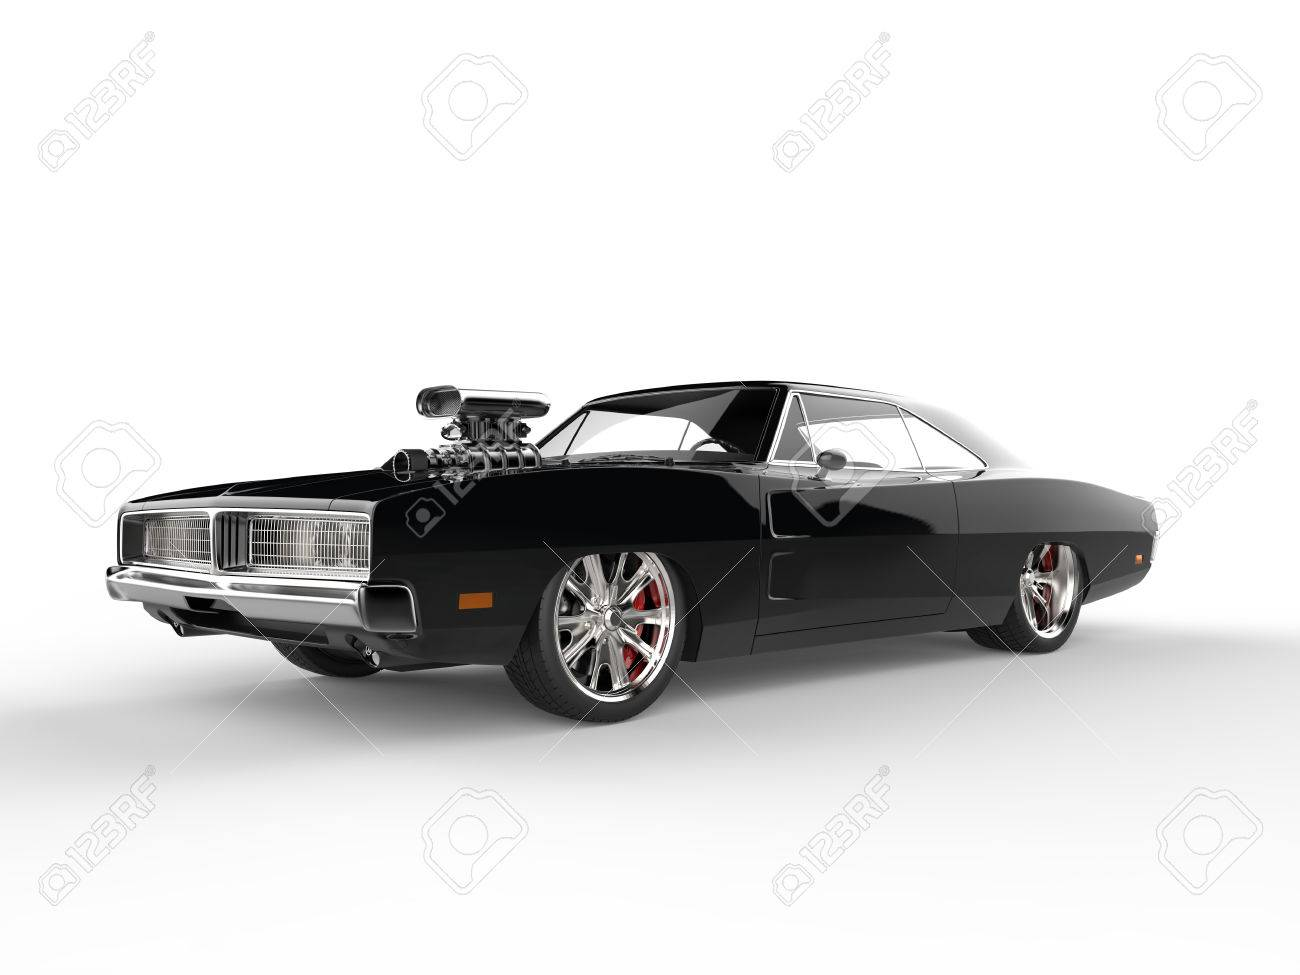 Cool Old School Black Muscle Car Stock Photo, Picture And Royalty ...